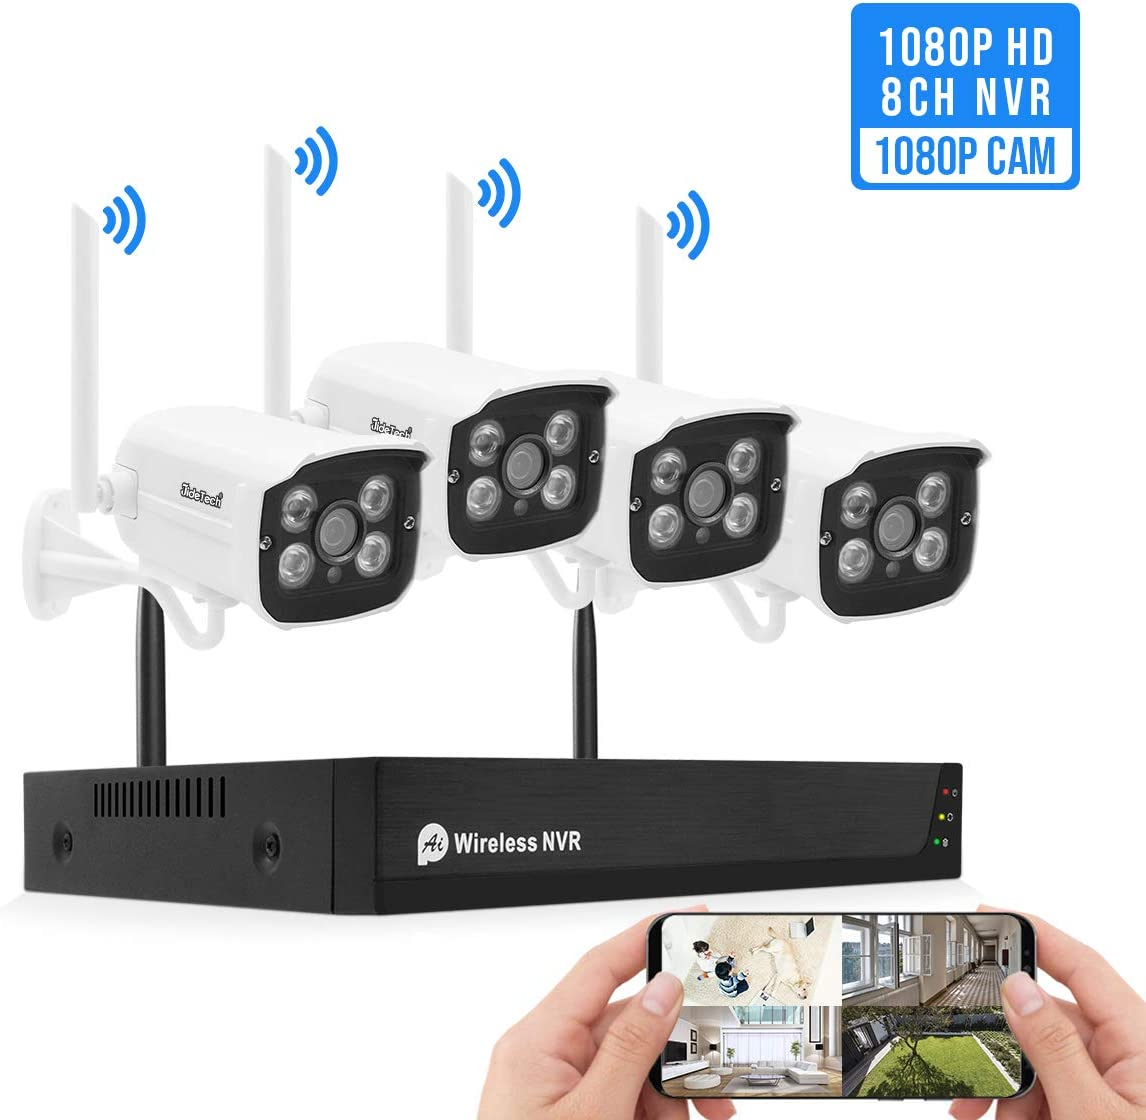 1080P Wireless Security Camera System Outdoor Indoor Plug Play 8-Channel NVR 4Pcs 2MP WiFi Video Surveillance Cameras with H.265 Night Vision, Motion Detection, P2P, 24 7 Recording, No Hard Drive